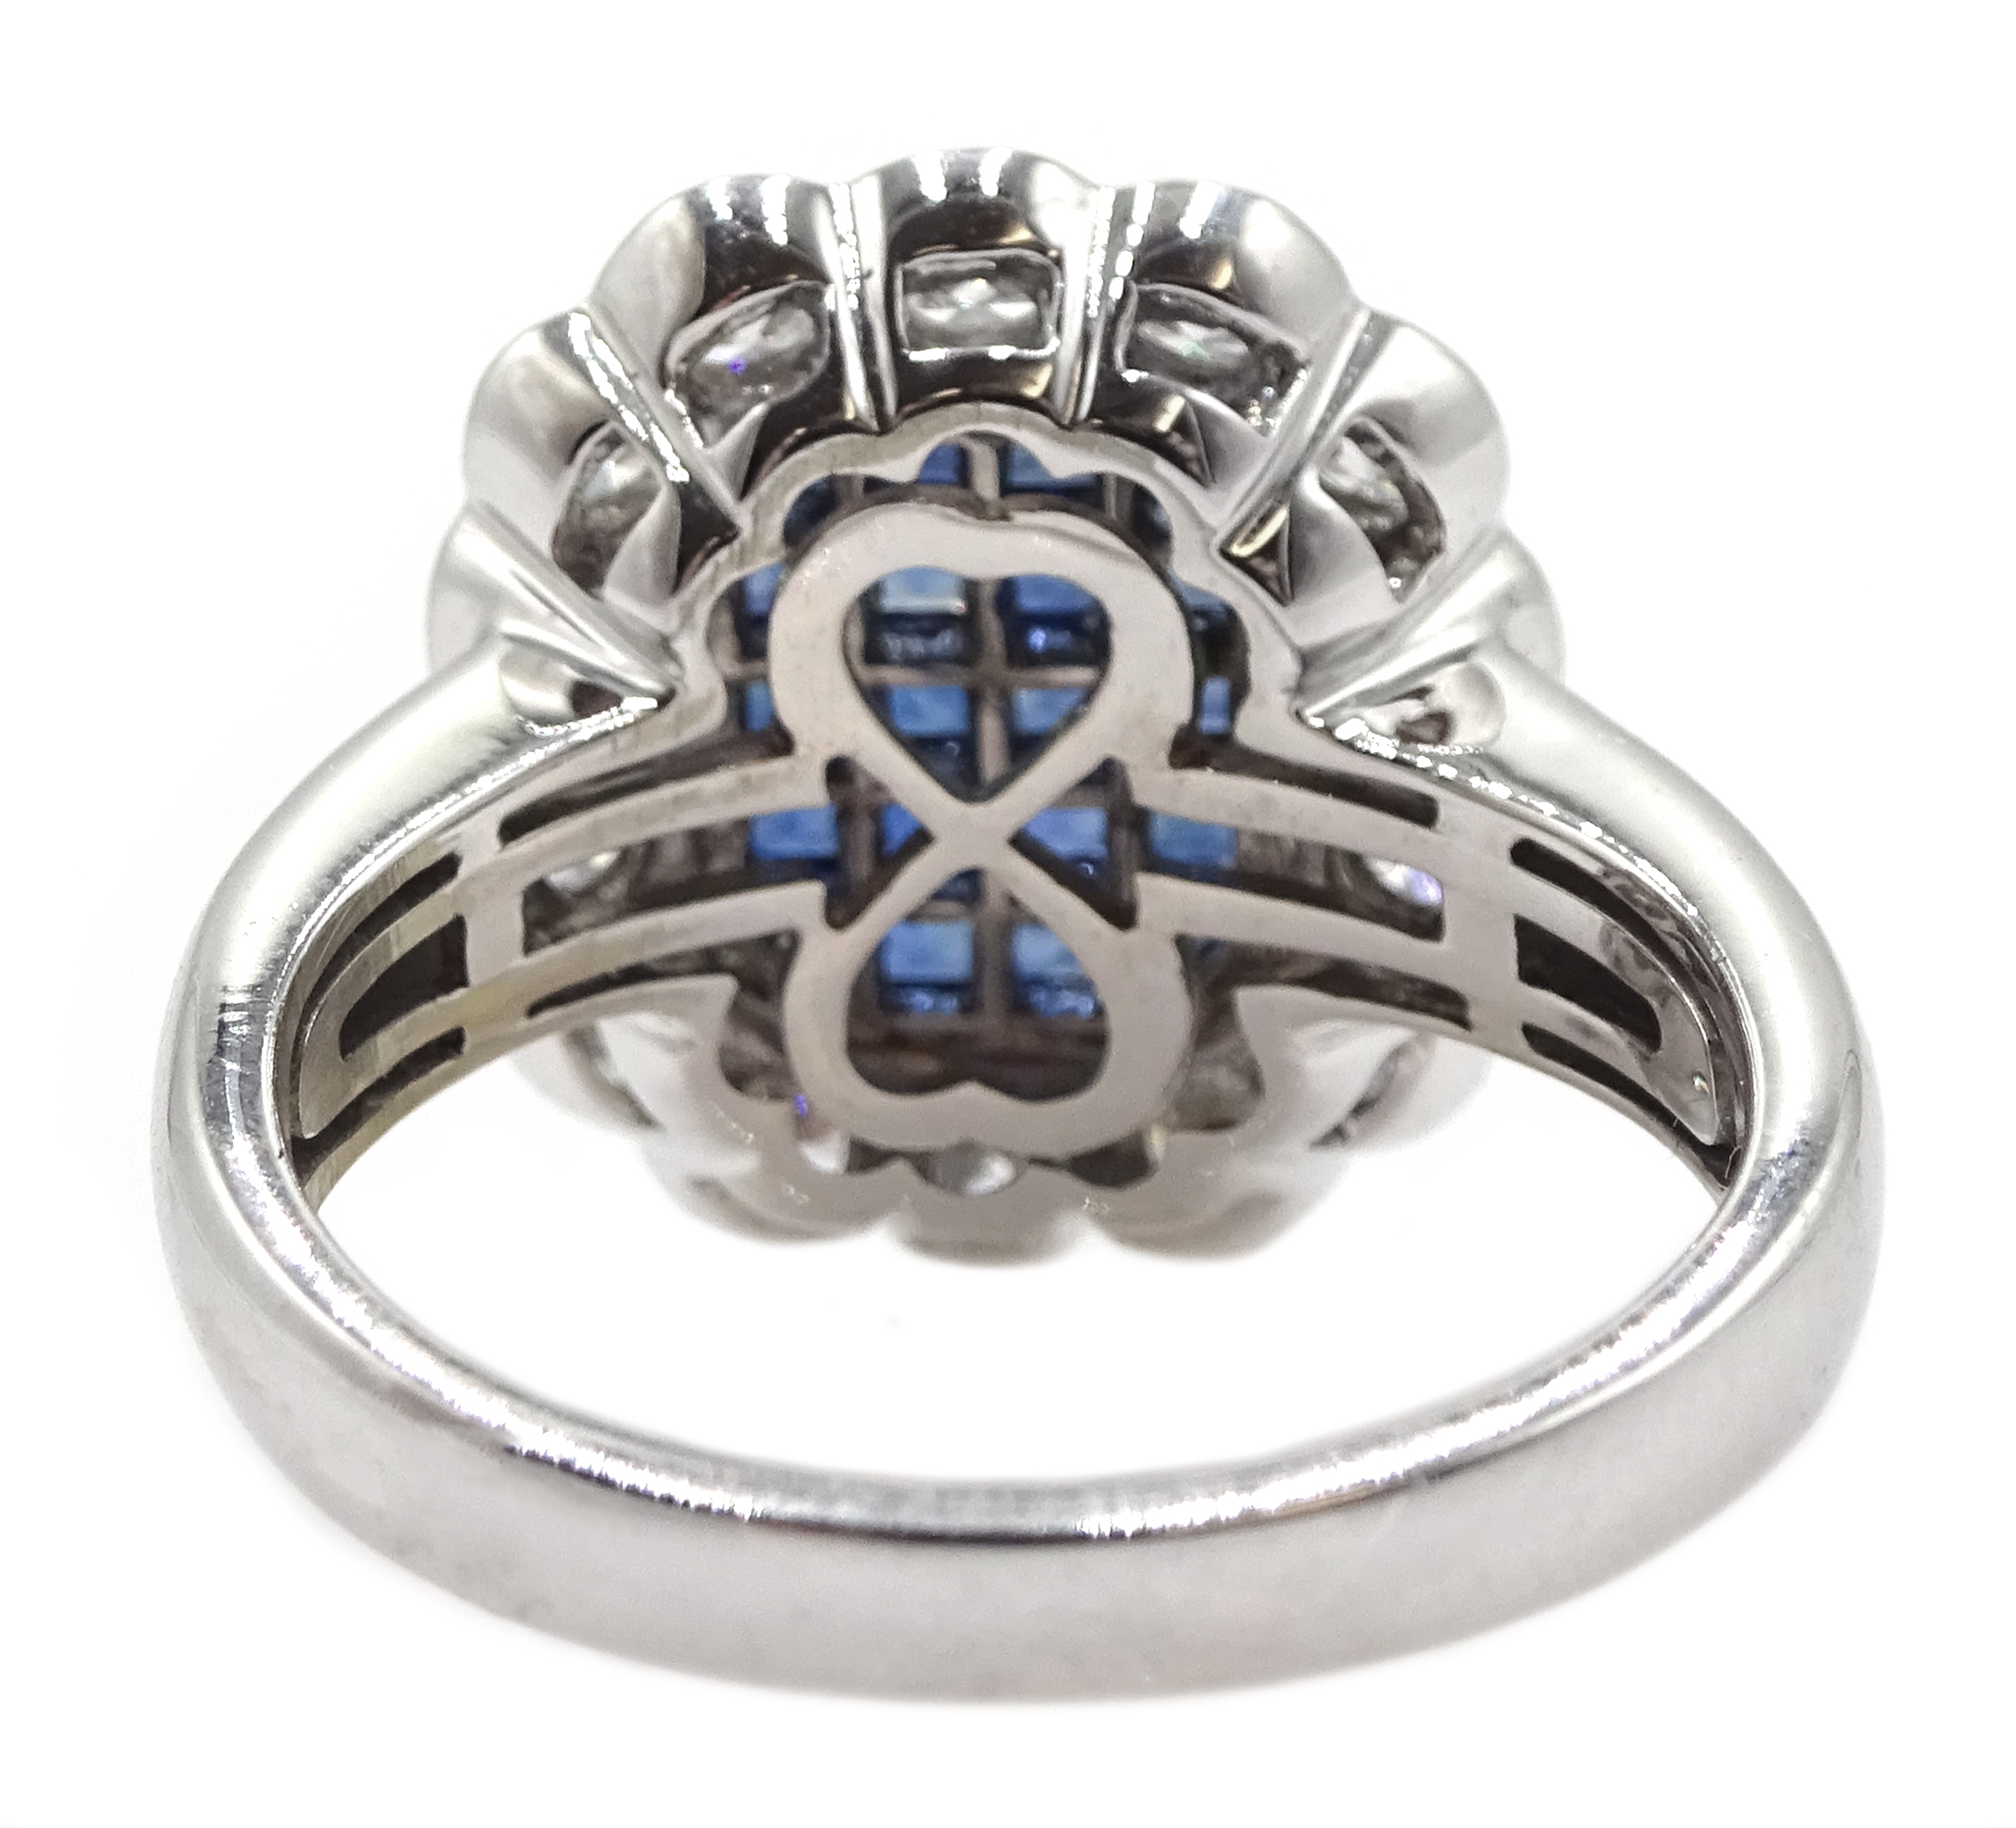 18ct white gold, sapphire and diamond cluster ring - Image 5 of 5